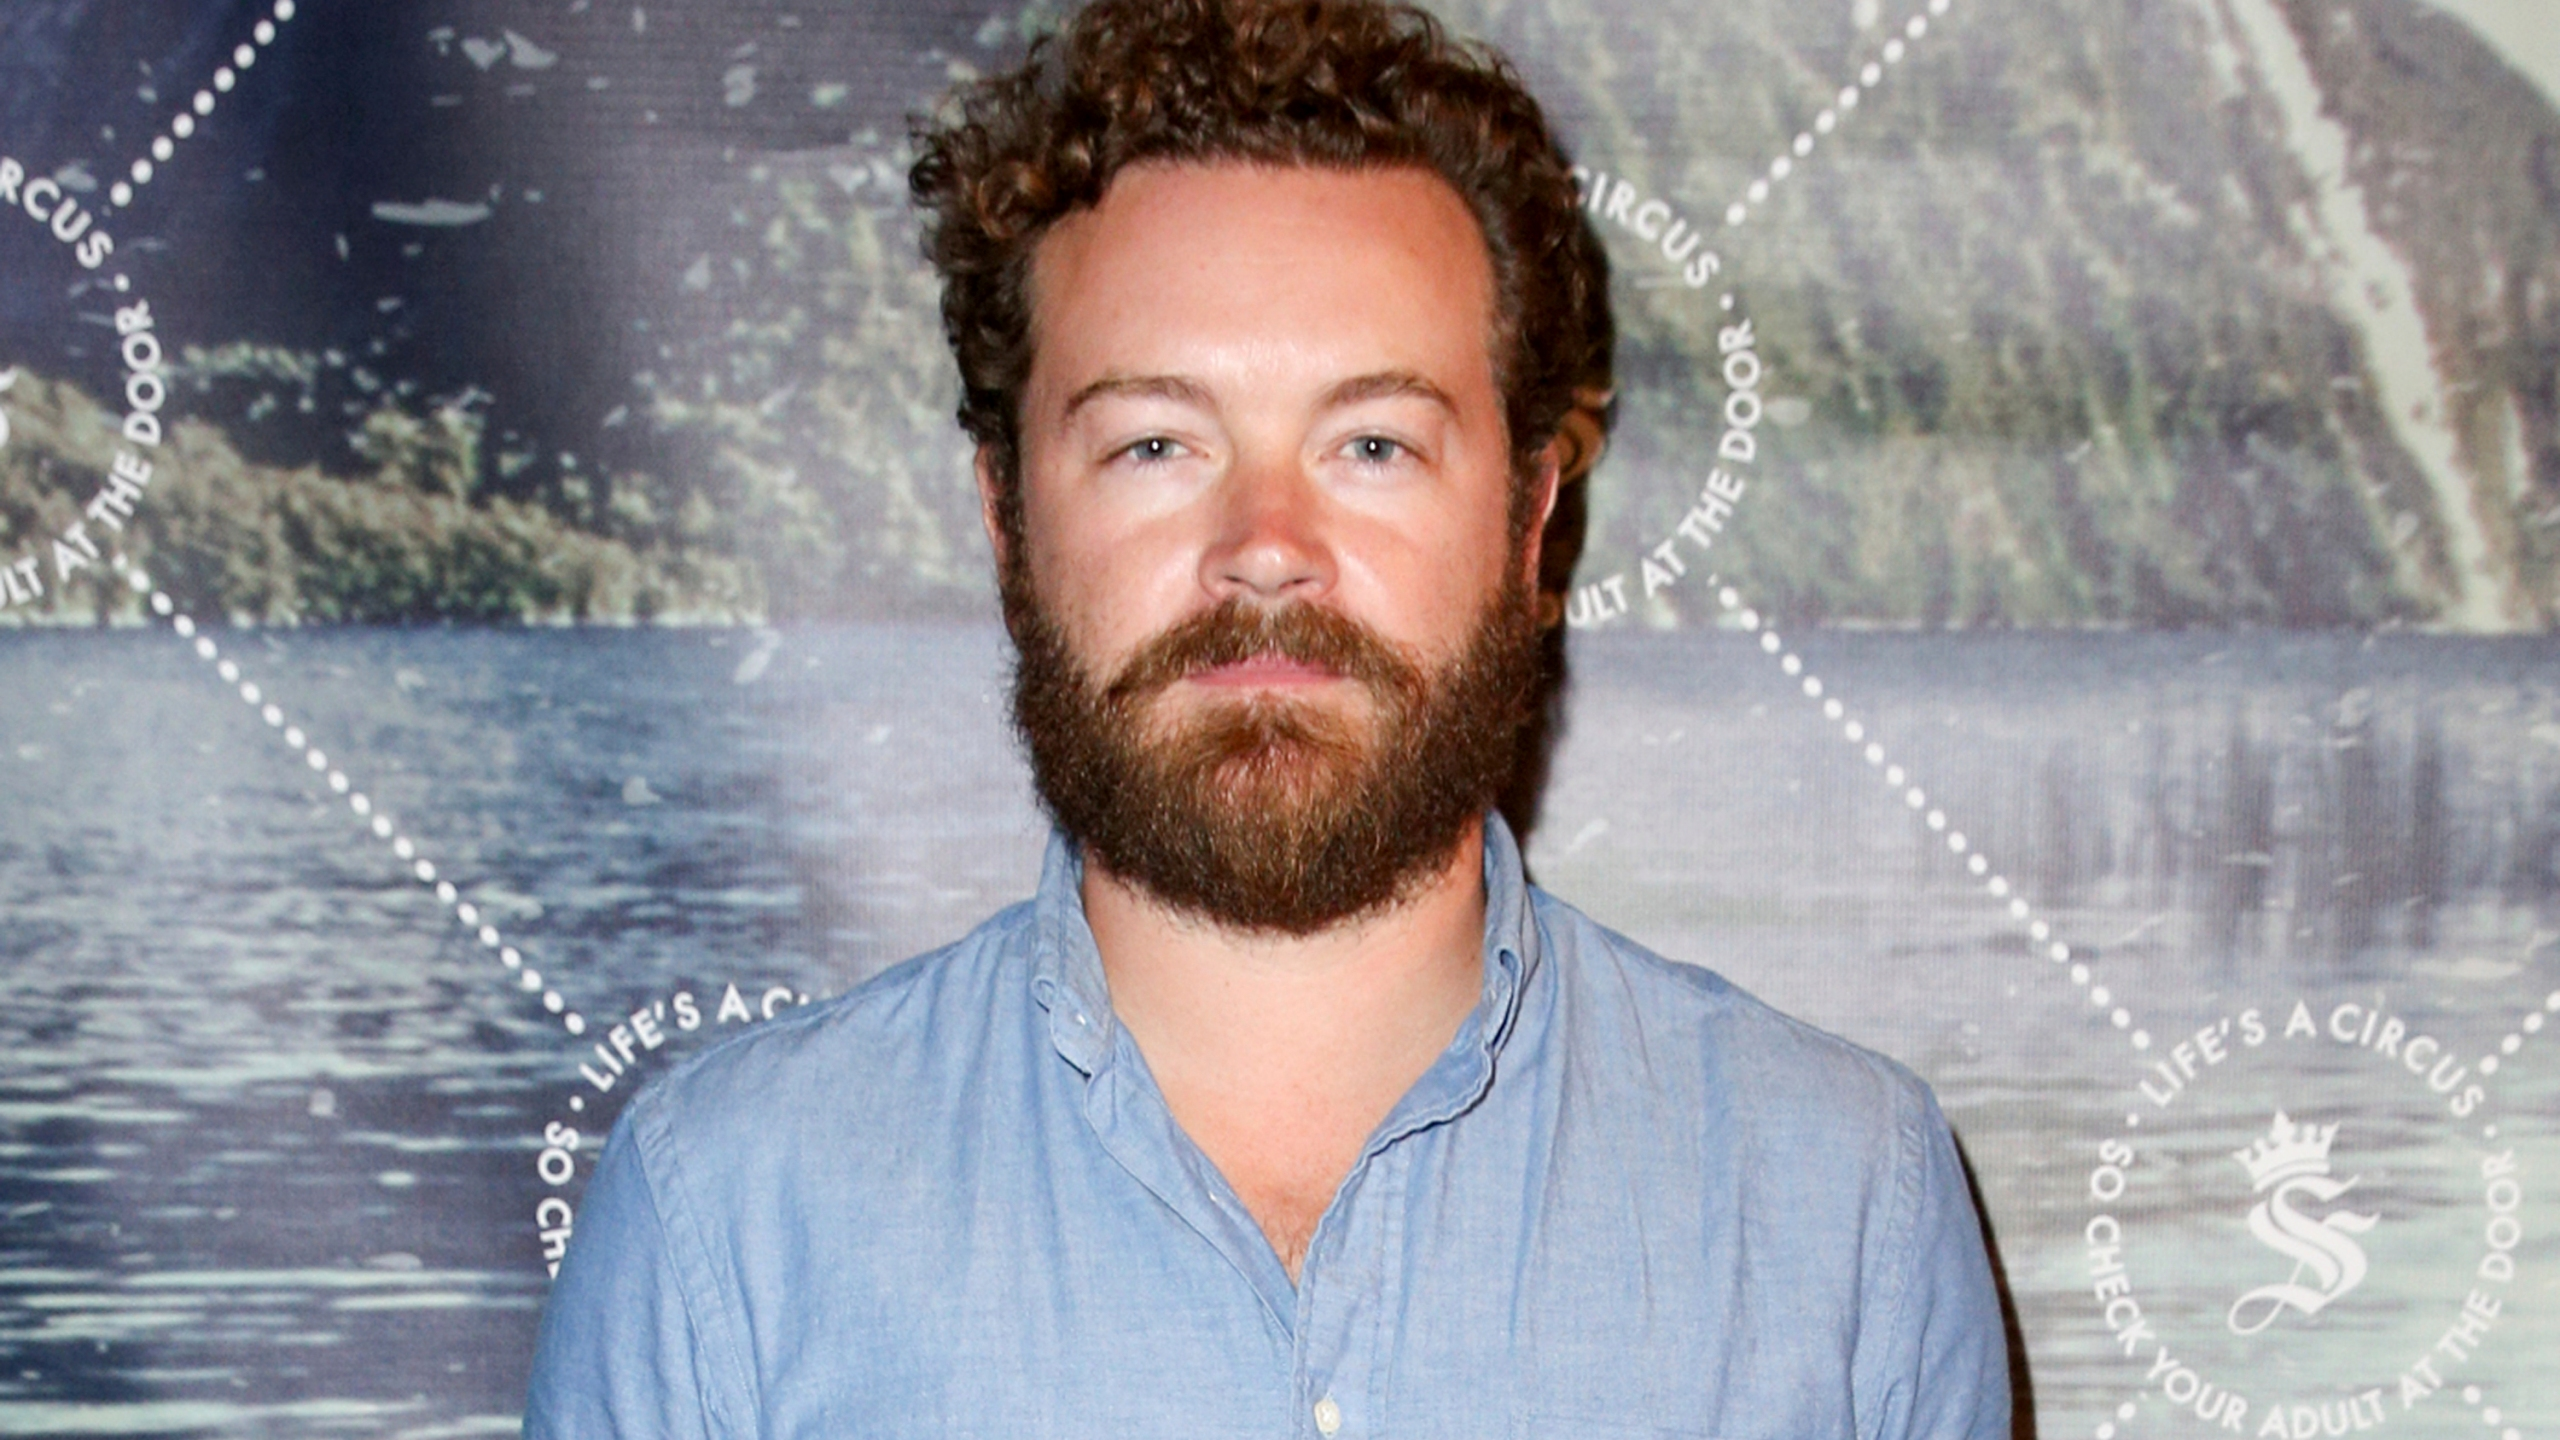 Danny Masterson arrives at The Unveiling of Seedling's Arts District Headquarters on May 28, 2015, in Los Angeles. Masterson's attorney Thomas Mesereau repeatedly challenged a woman on the witness stand during a hearing on Thursday, May 20, 2021, to determine whether Masterson should stand trial on three counts of rape. He has pleaded not guilty. (Photo by Rich Fury/Invision/AP, File)